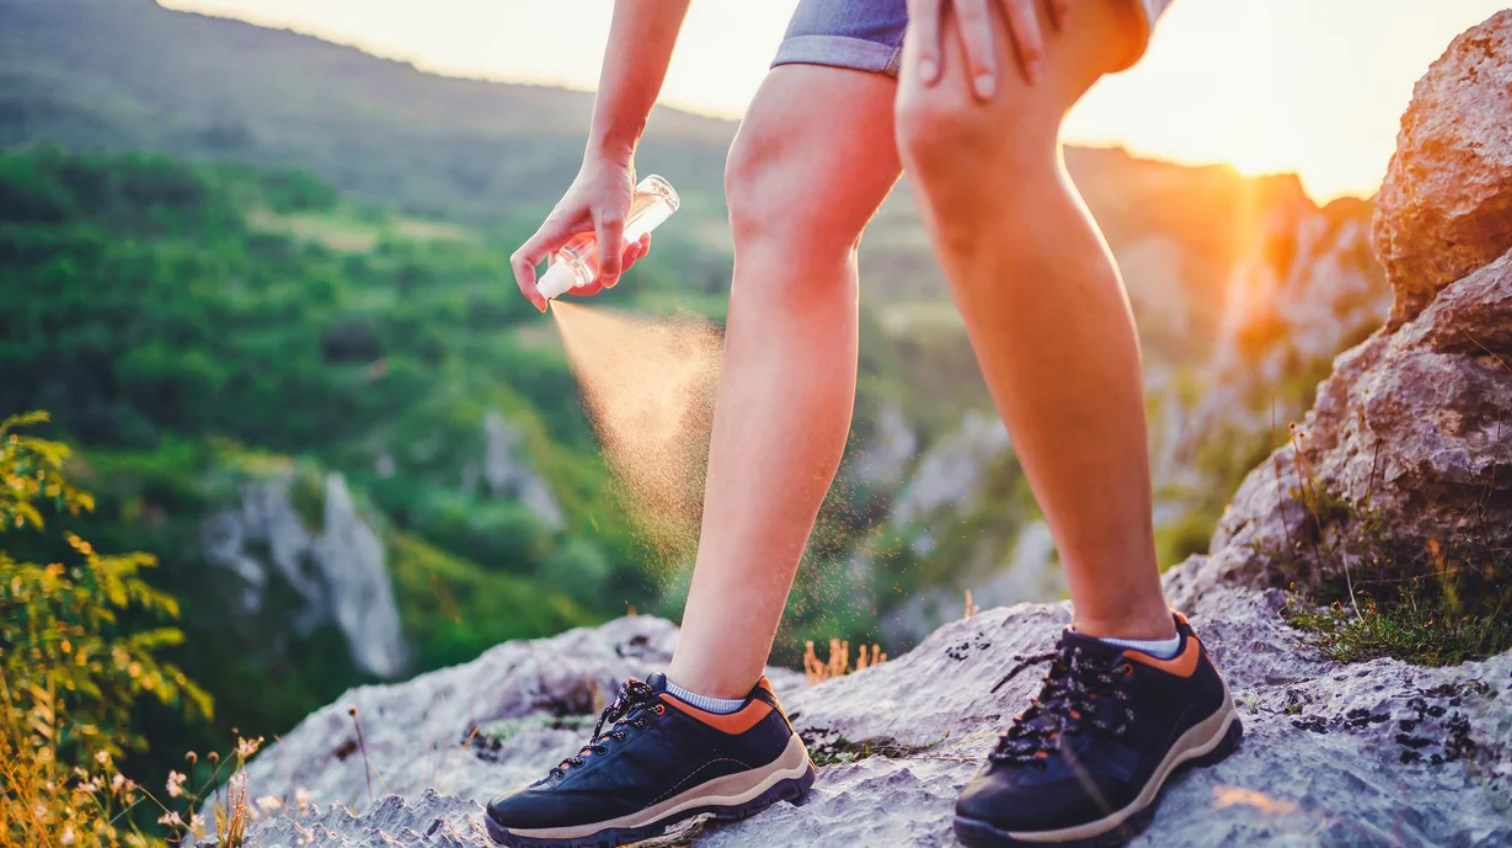 10 Best Insect Repellents in 2021